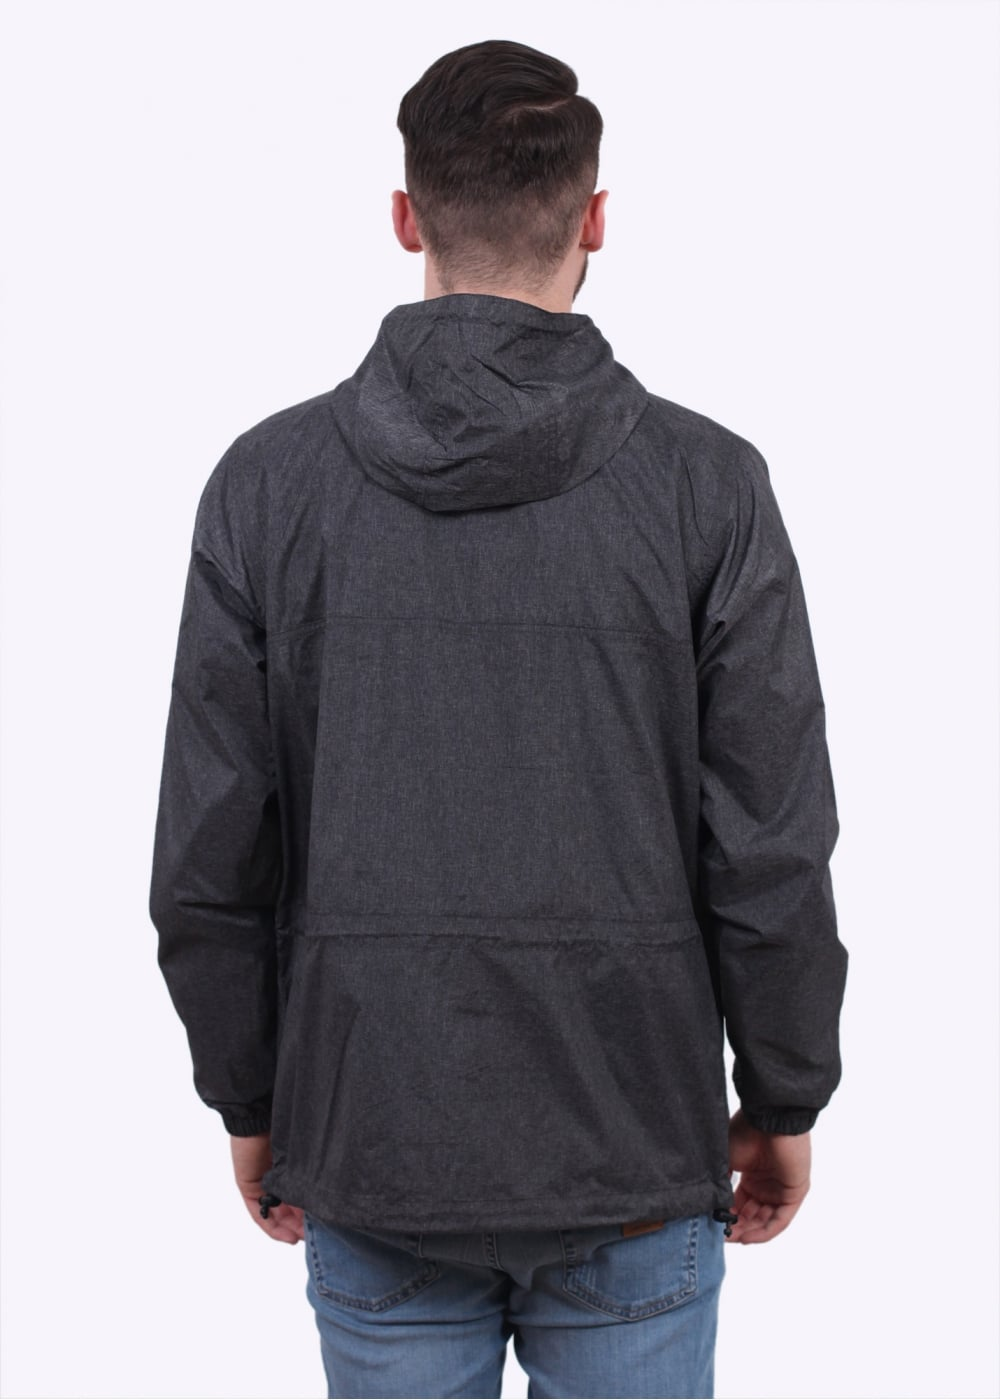 carhartt spinner pullover jacket black carhartt from triads uk. Black Bedroom Furniture Sets. Home Design Ideas